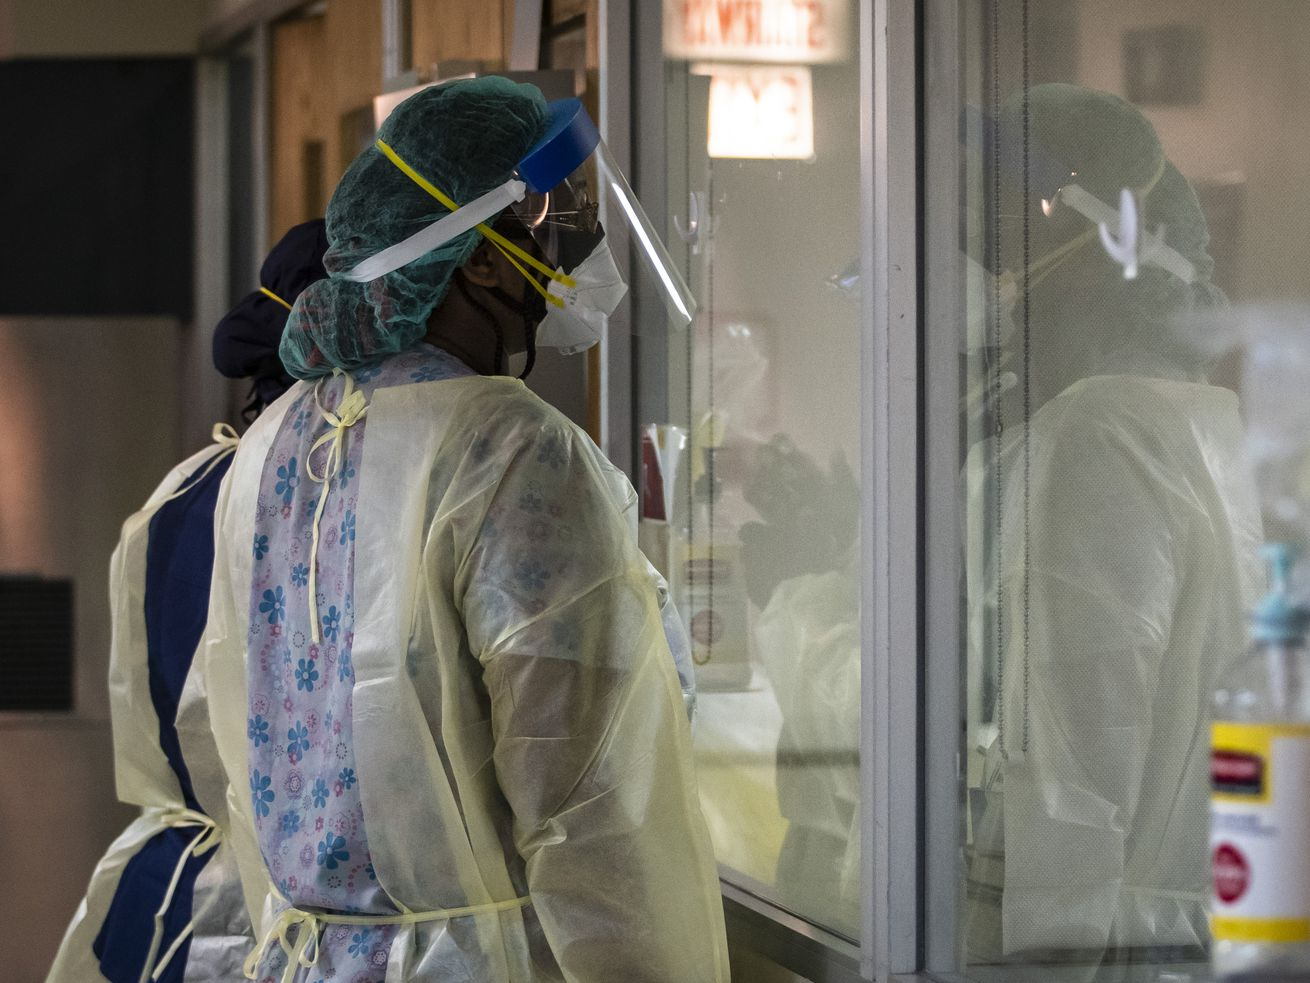 Nurses look through a window as they check on a man with COVID-19 last year in the Intensive Care Unit at Roseland Community Hospital. Illinois recorded its worst one-day coronavirus death toll in nearly six months Wednesday.